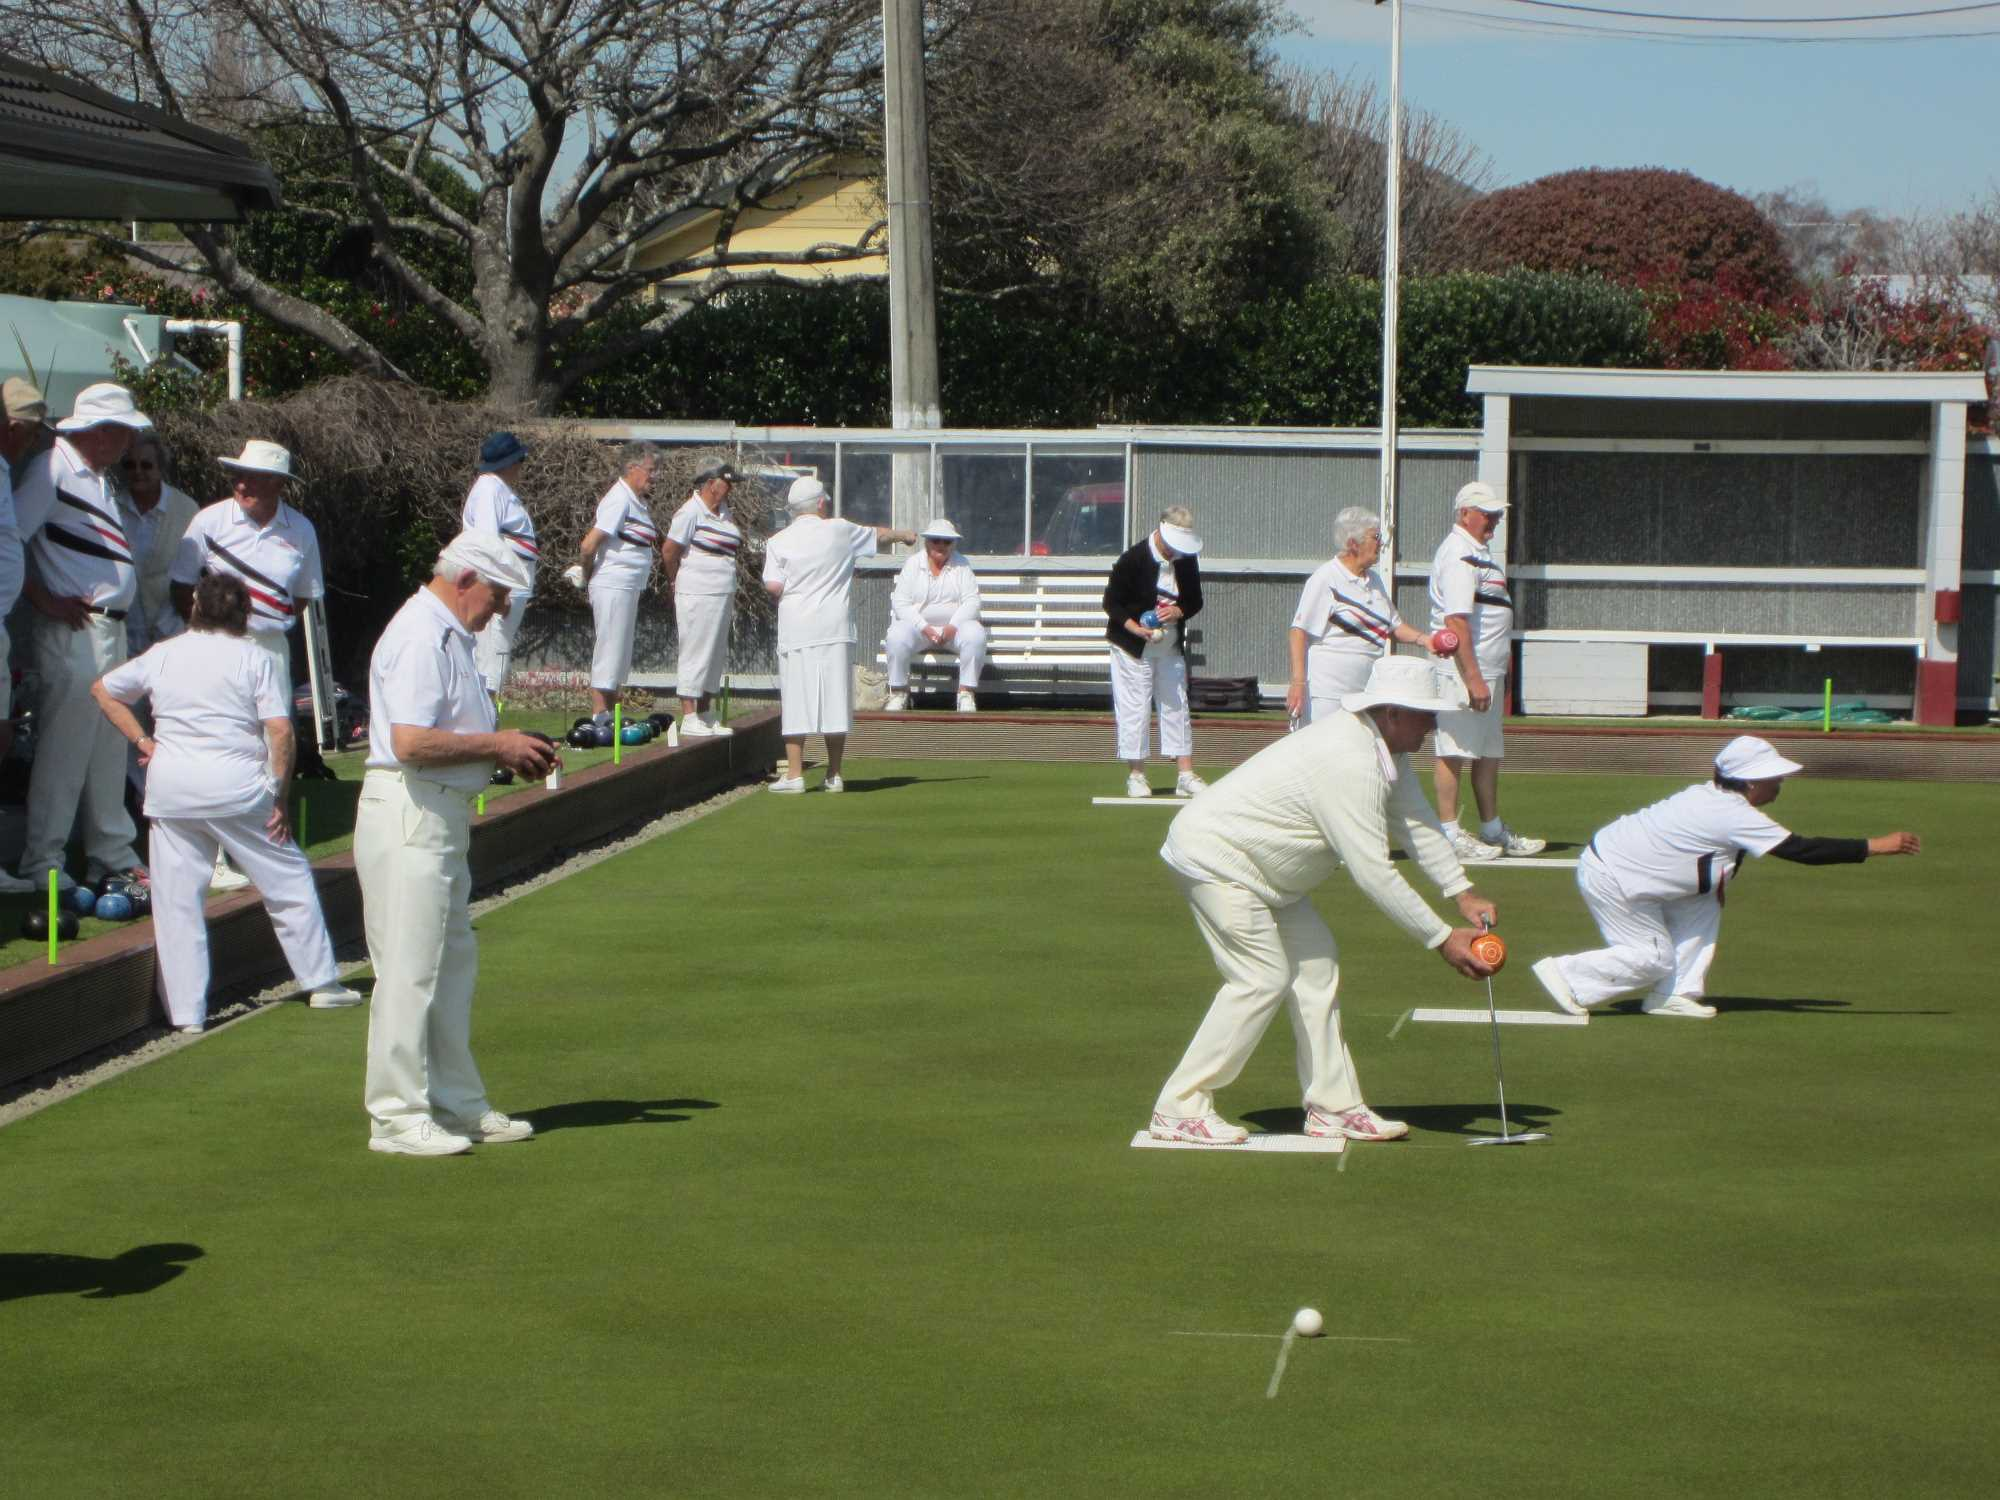 Chatterton Cup Round 1 - 1 Oct 2016